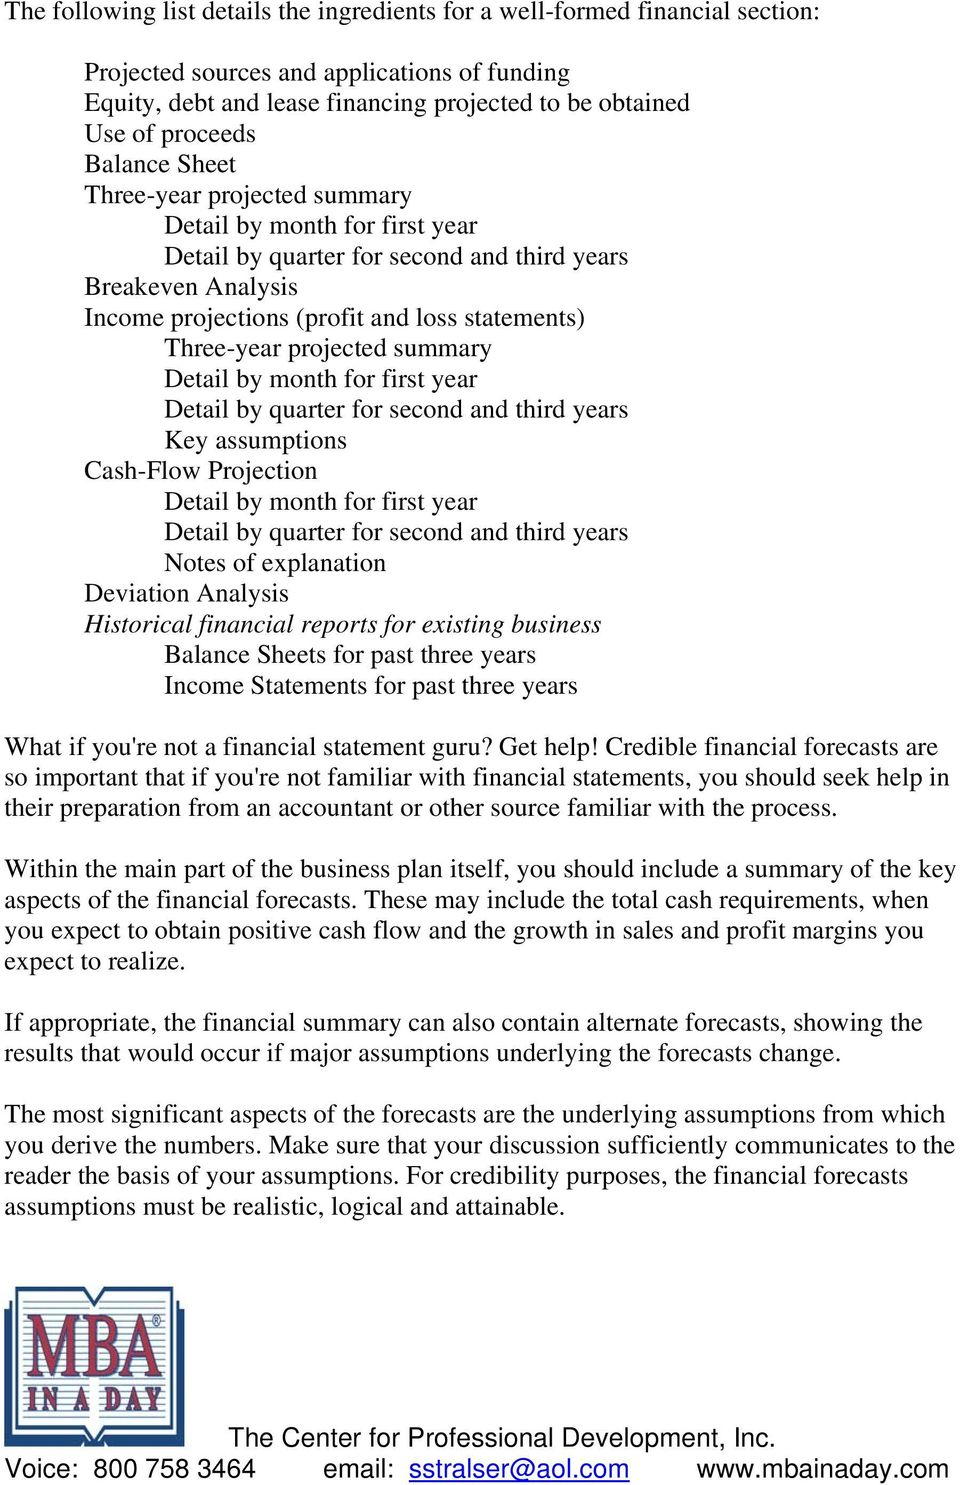 the financial analysis for a business plan should contain a forecast of operations